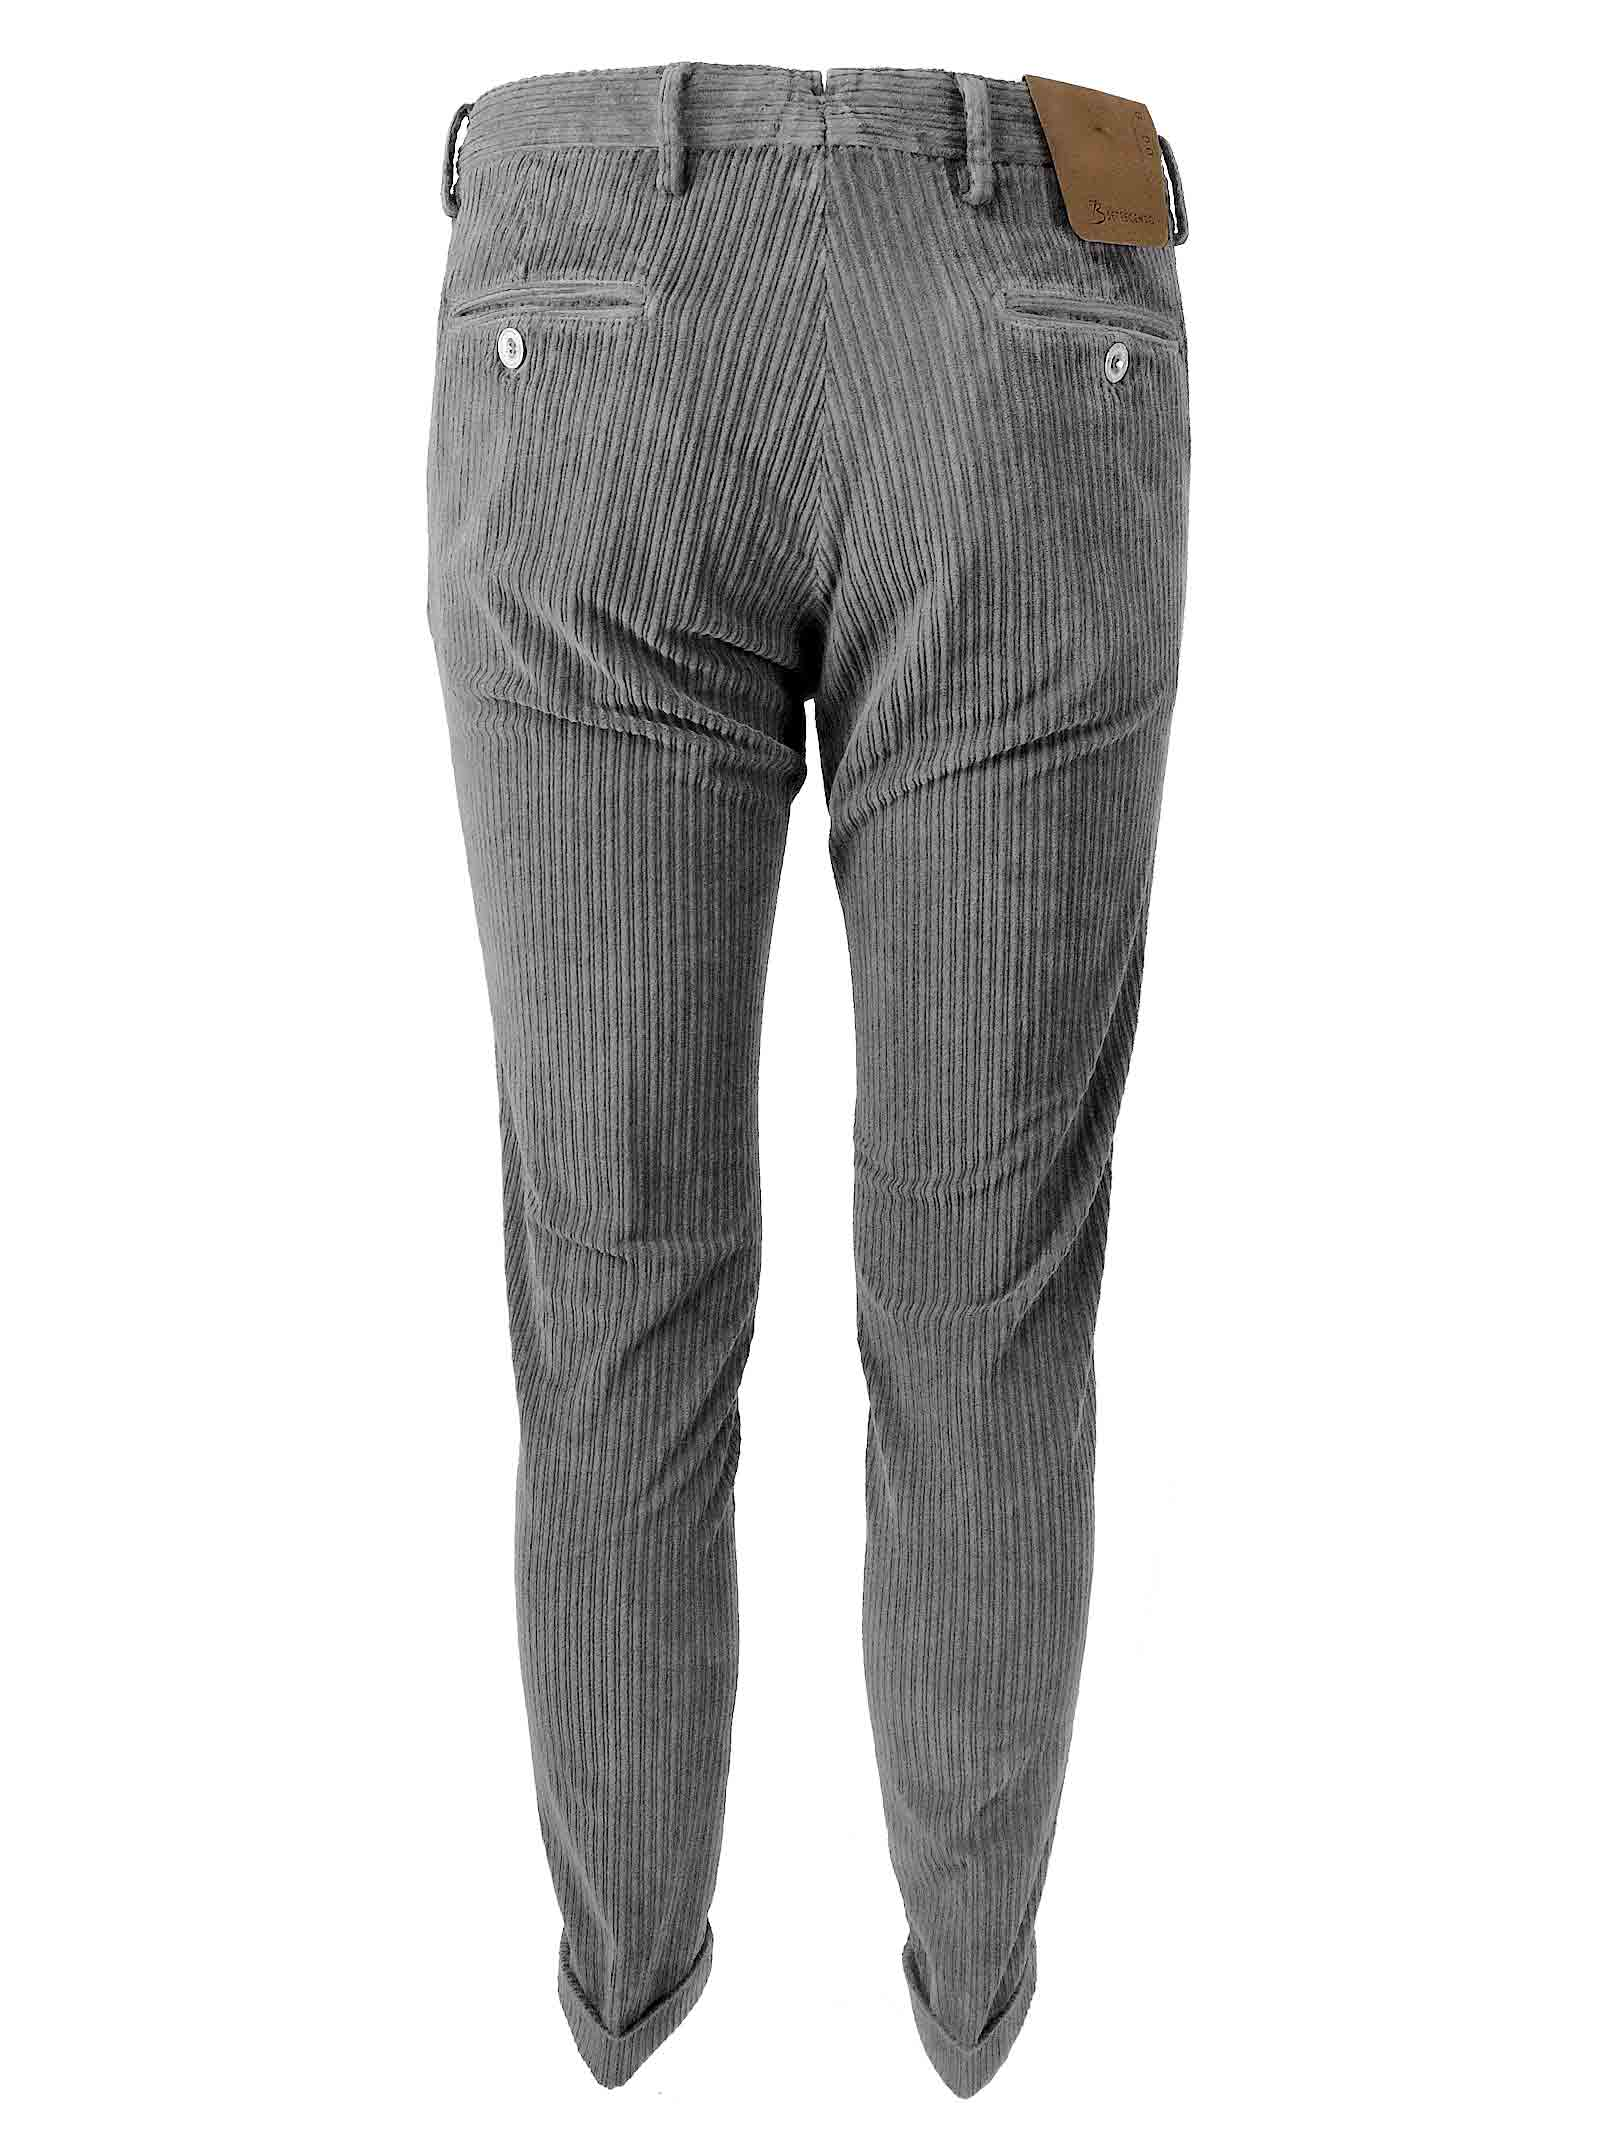 B700 | Trousers | MH700 802443